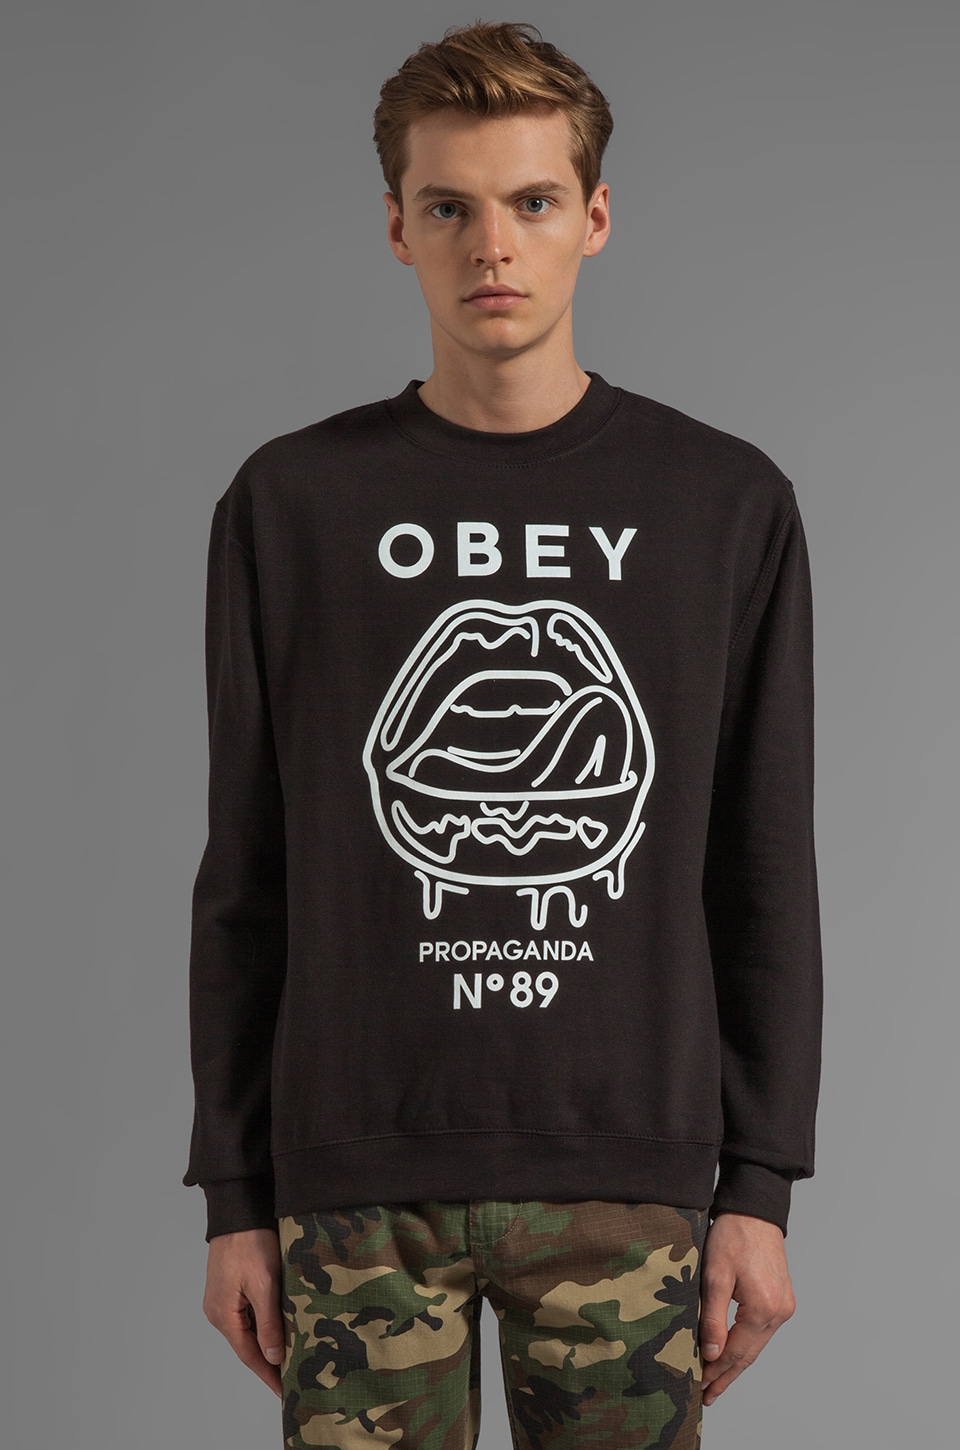 Obey Wet Lips Graphic Pullover Sweatshirt in Black